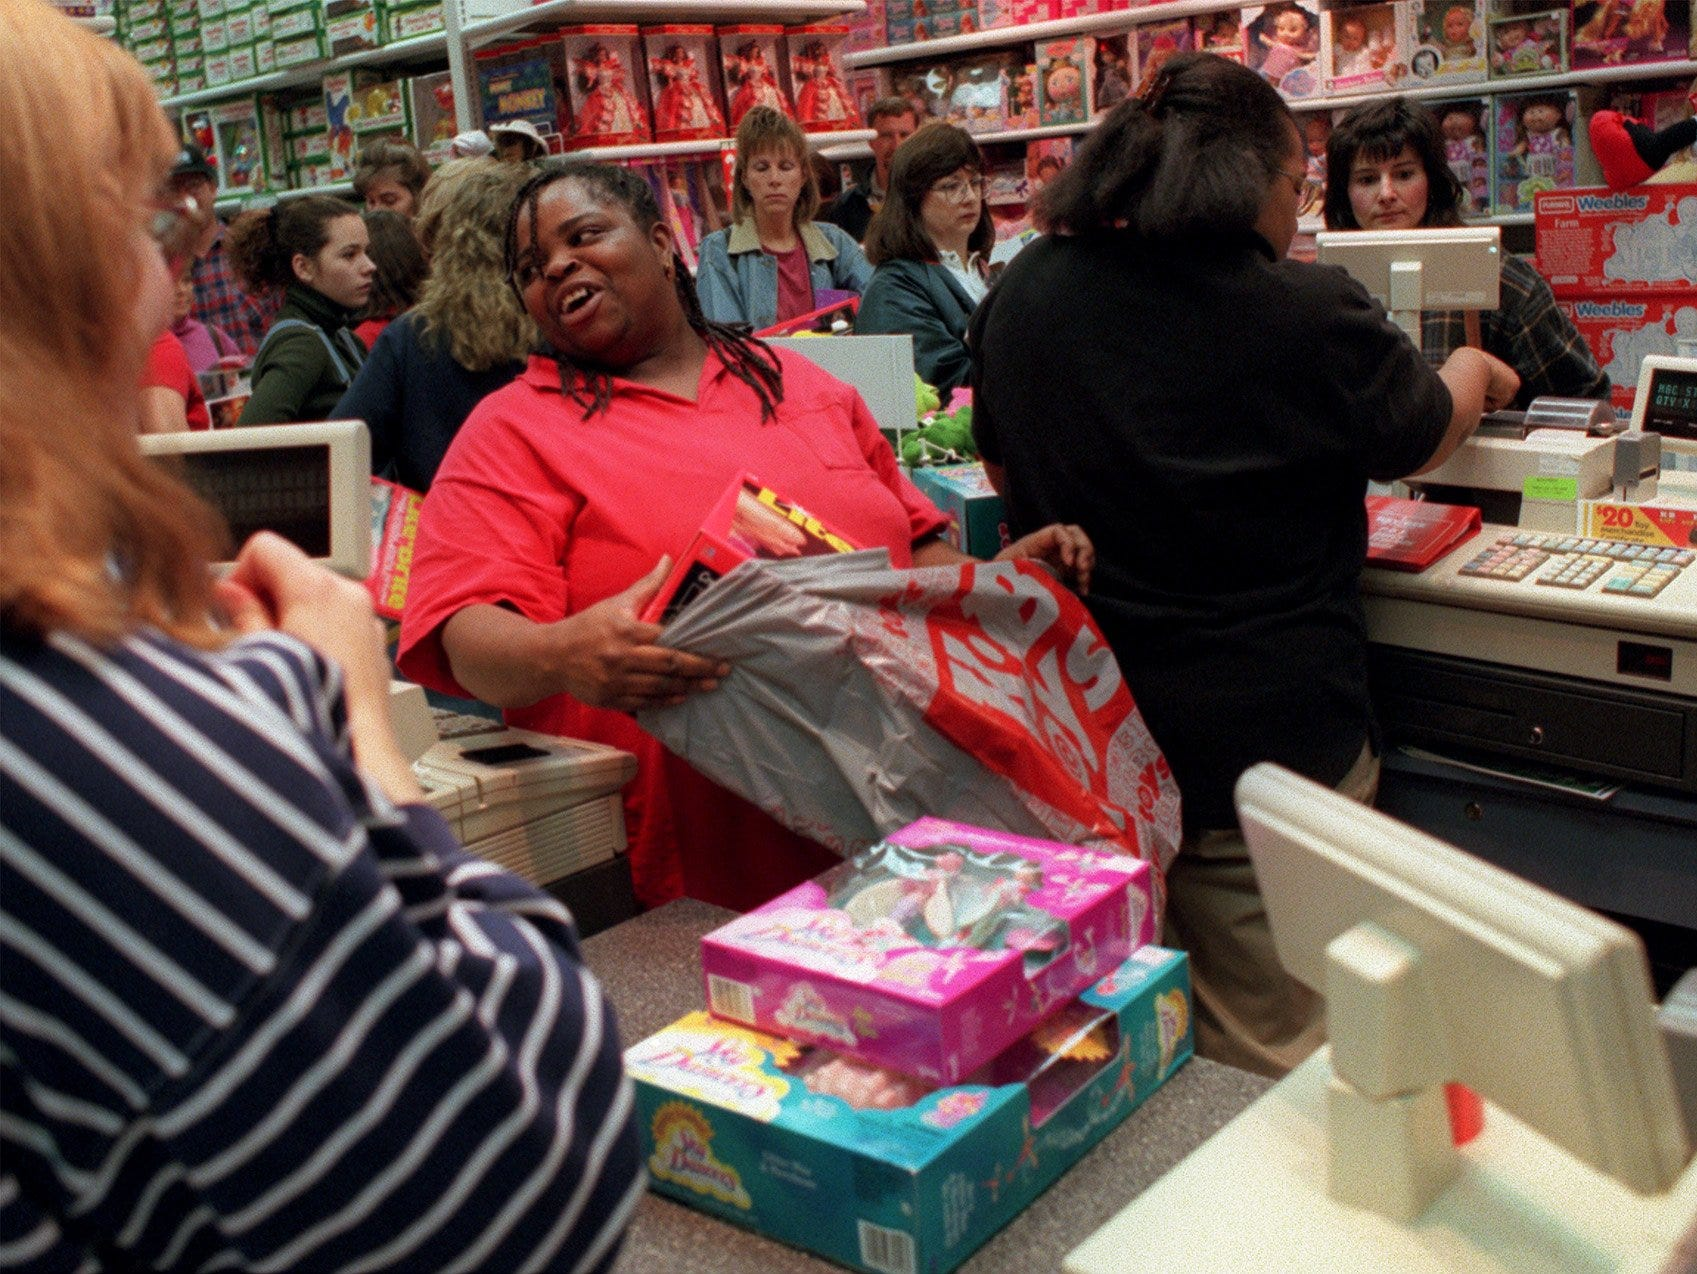 Jannetta Washington, an employee for K.B. Toys at Valley West mall uses laughter and good humor to get her through the most hectic shopping day of the year on Nov. 28, 1997.